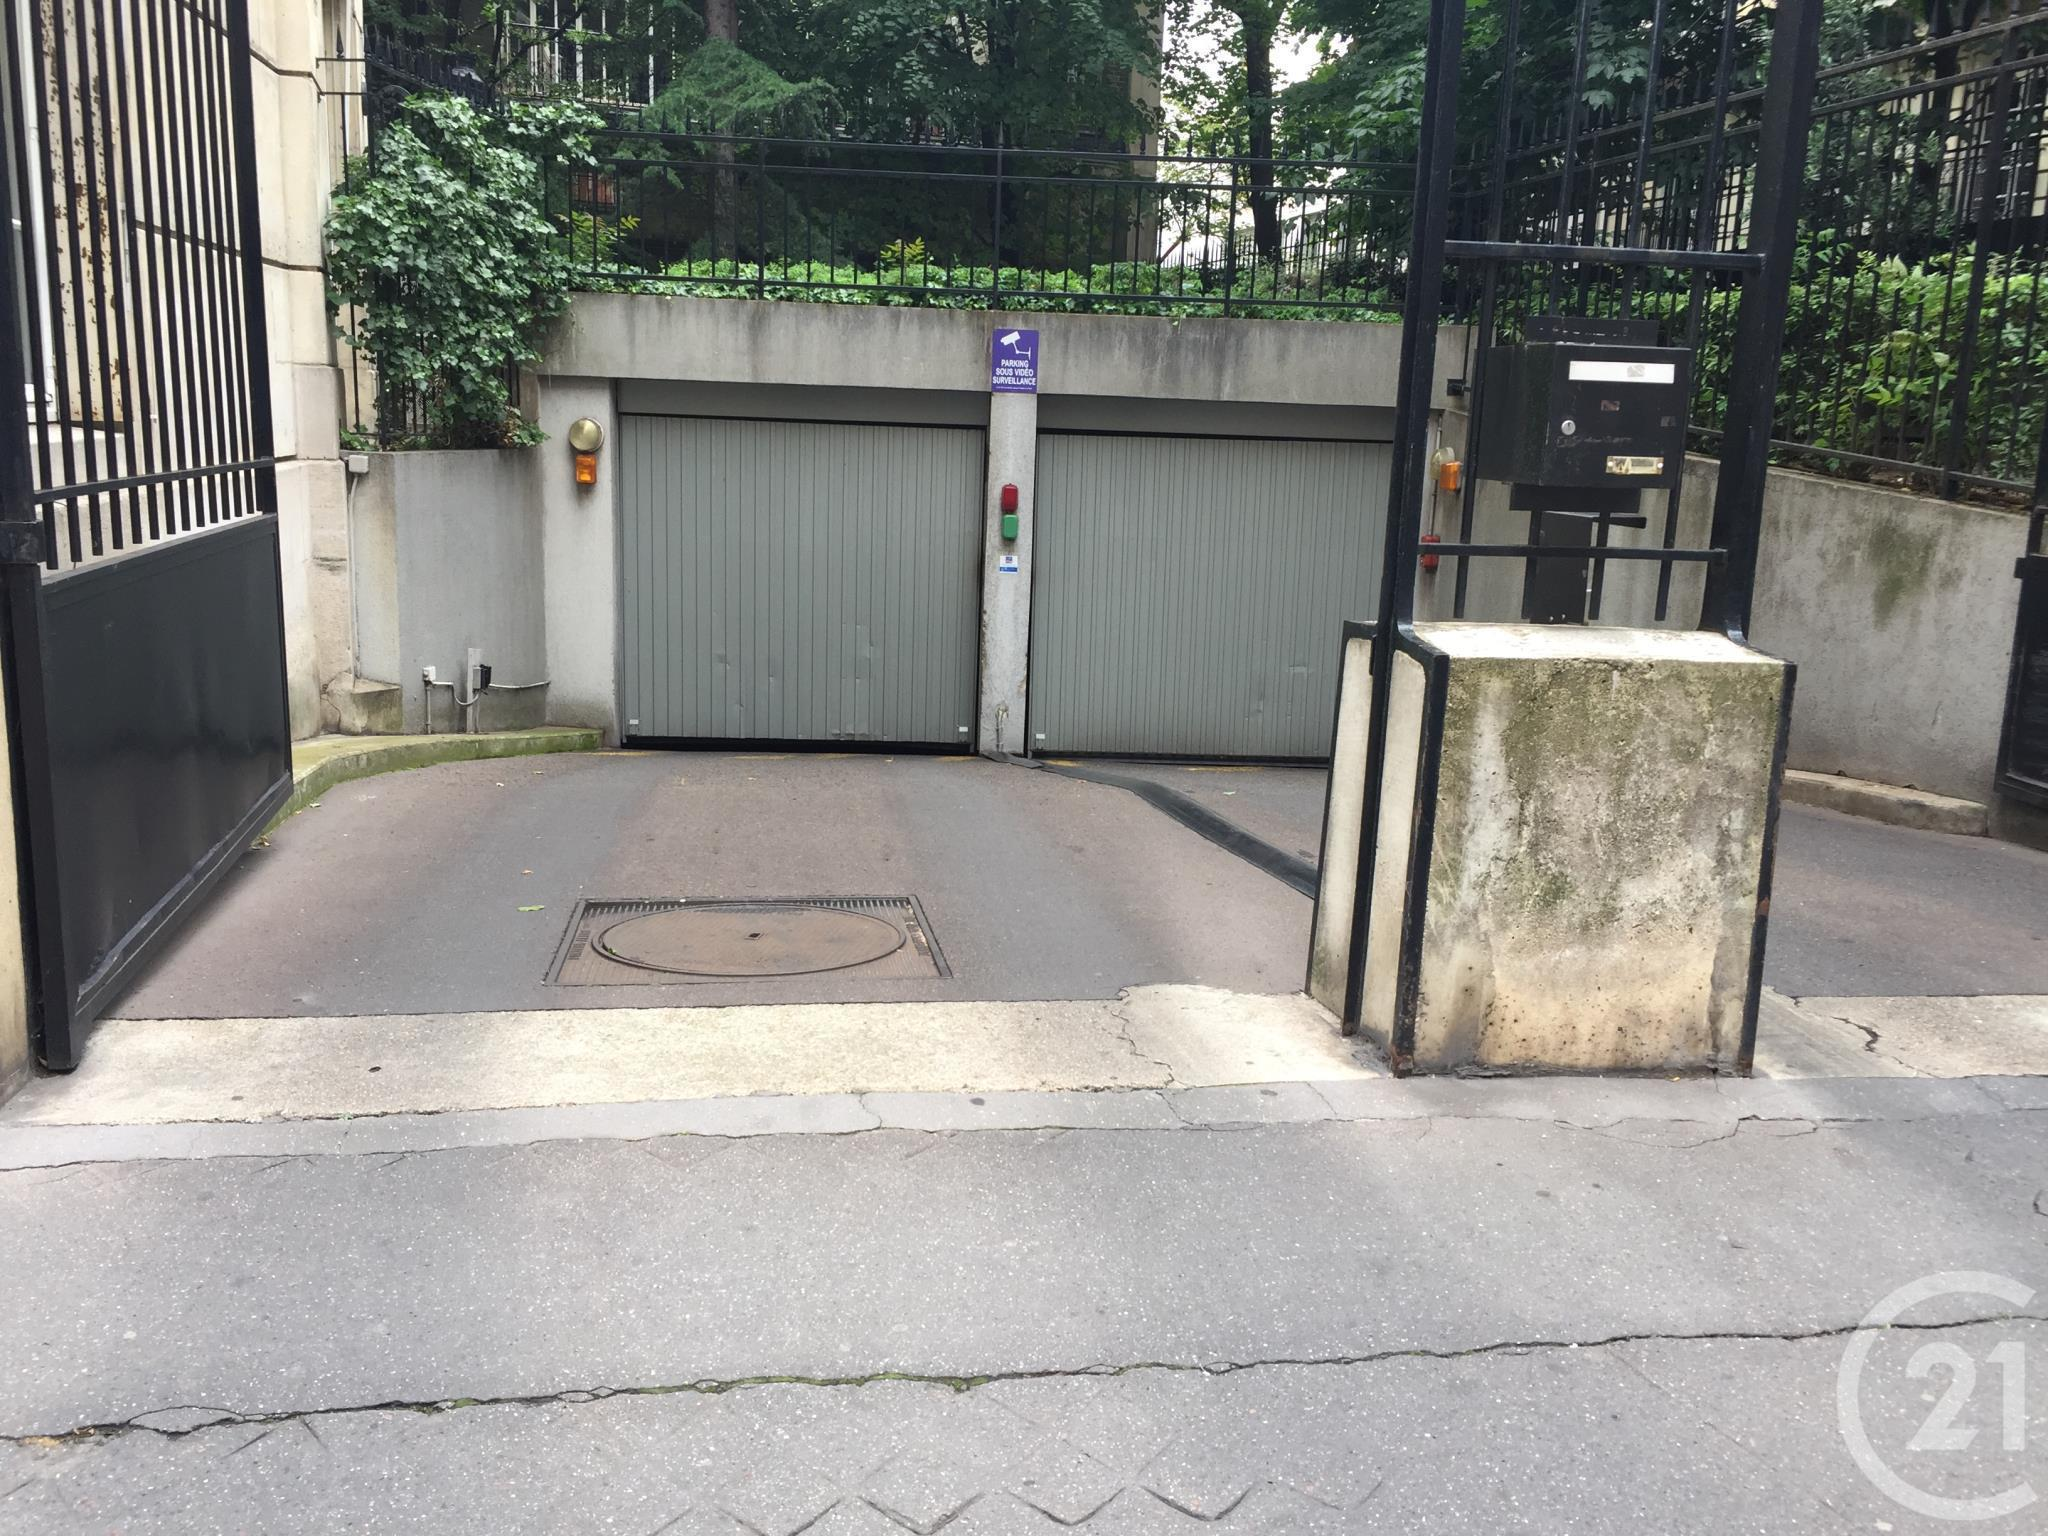 Parking à louer - 13 m2 - PARIS - 75008 - ILE-DE-FRANCE